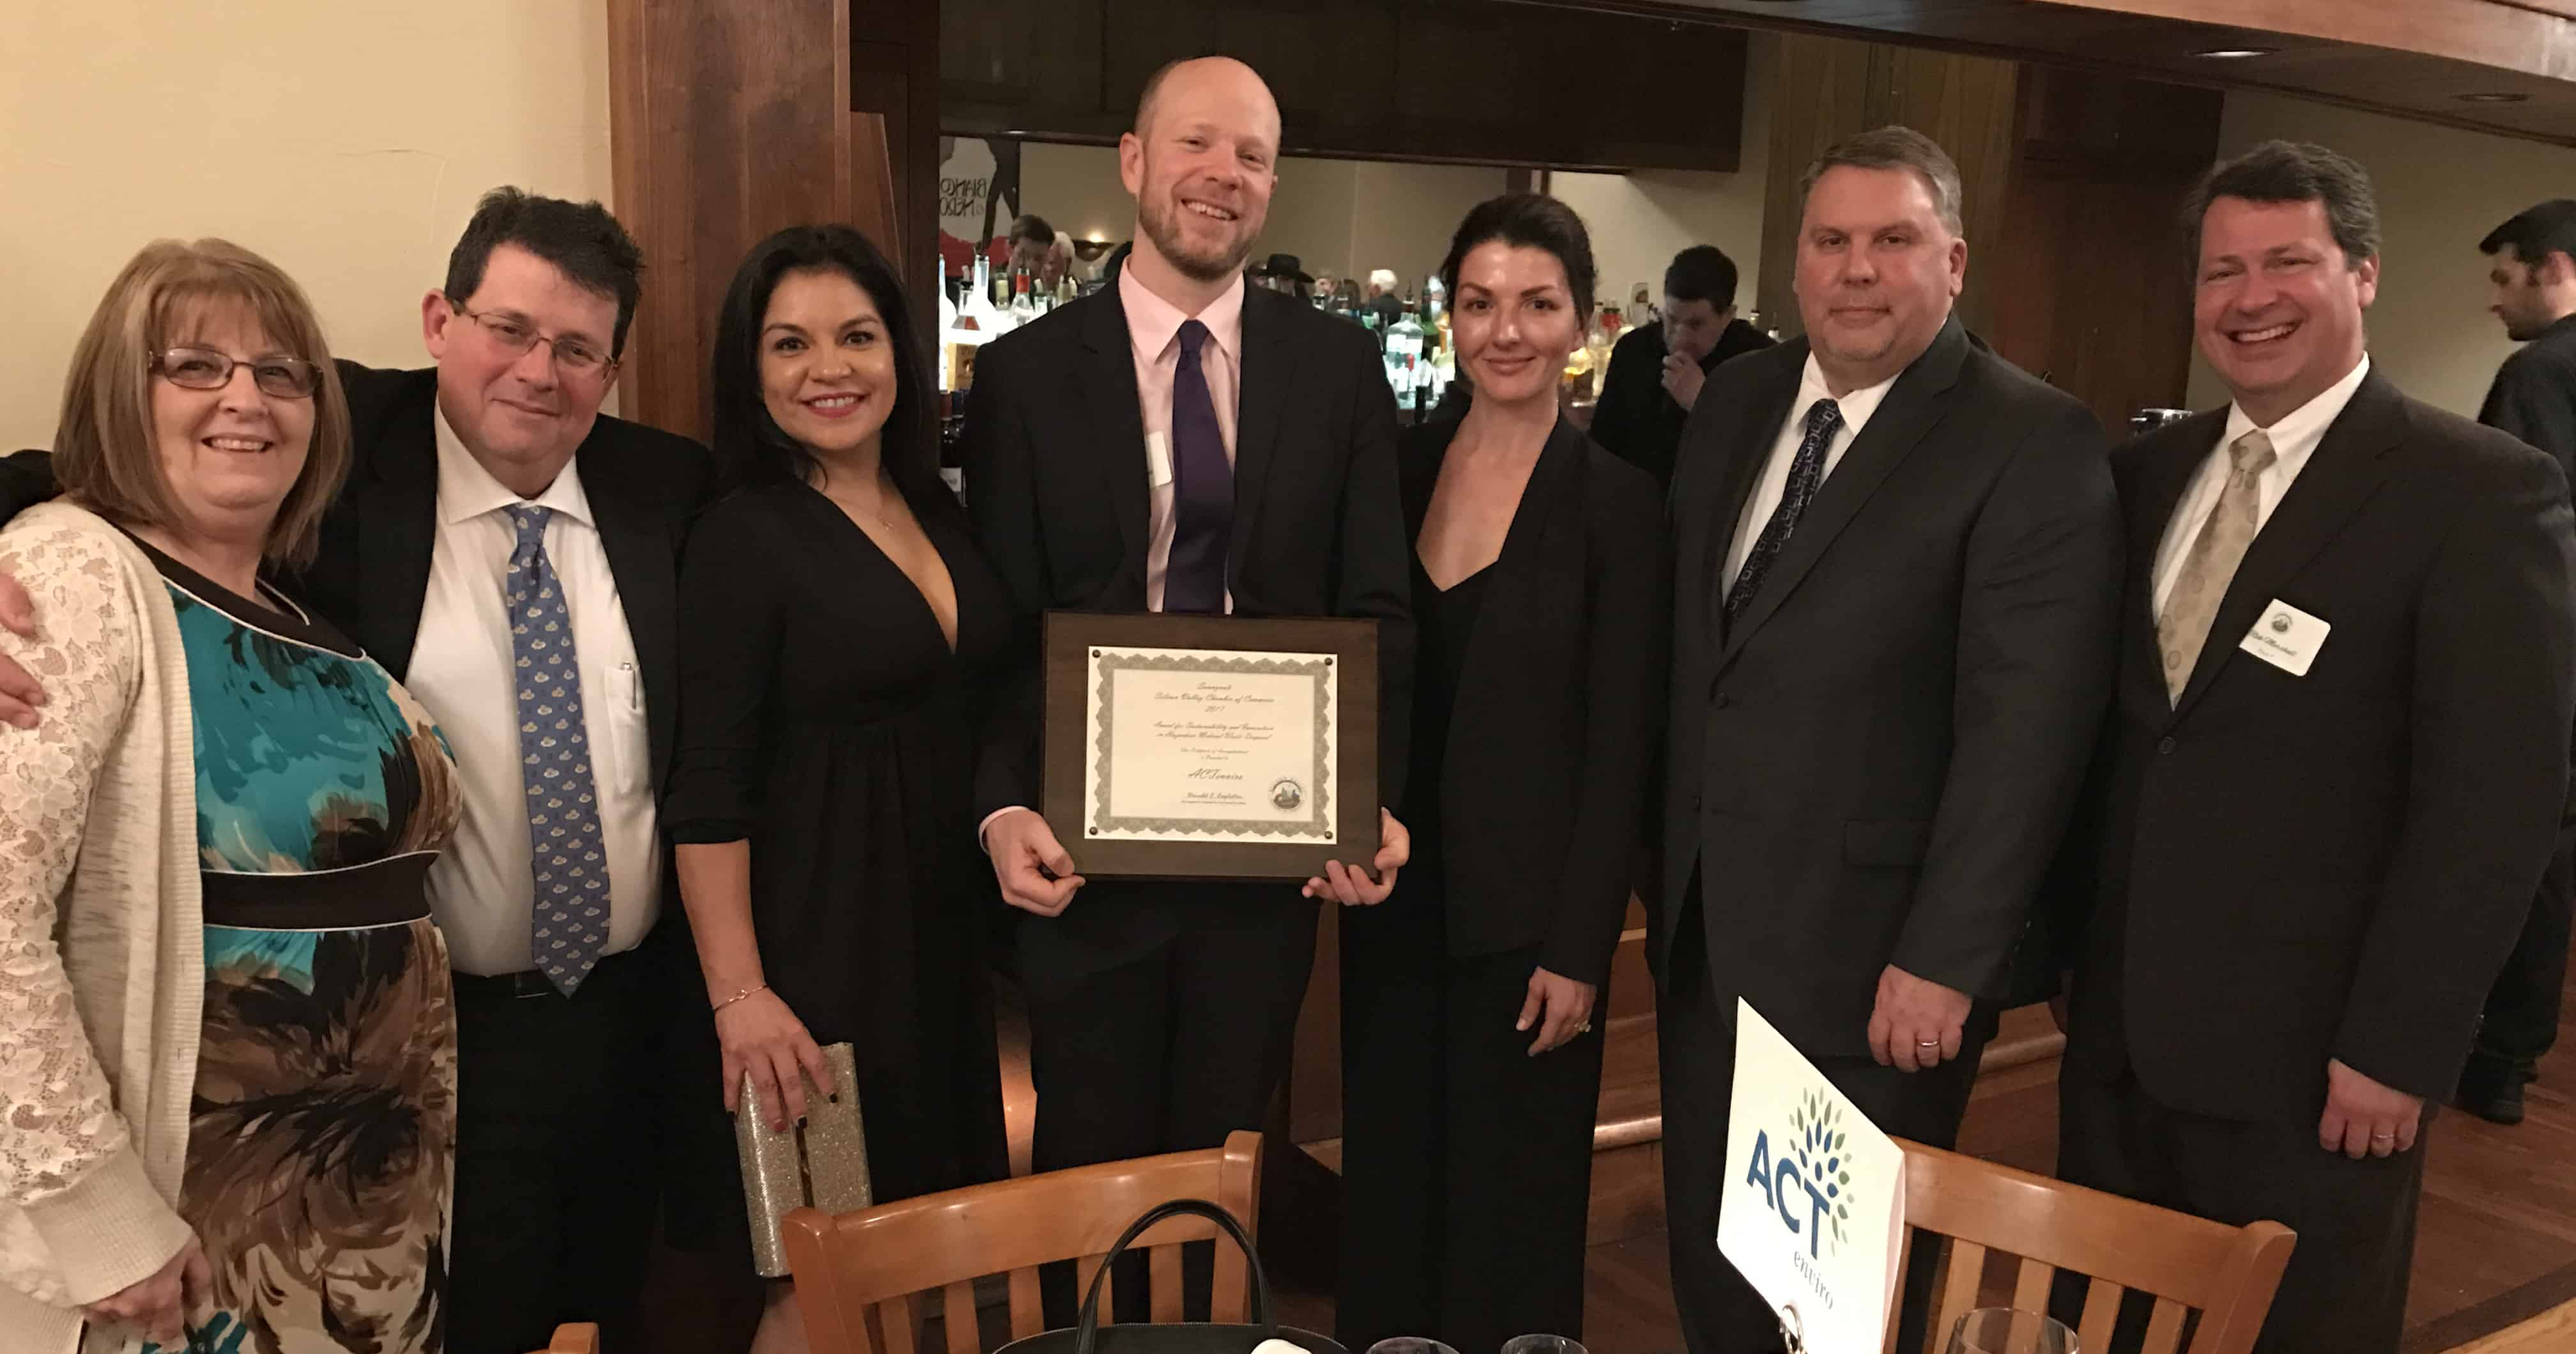 ACT Receives A Murphy Award From The Sunnyvale Silicon Valley Chamber Of Commerce!